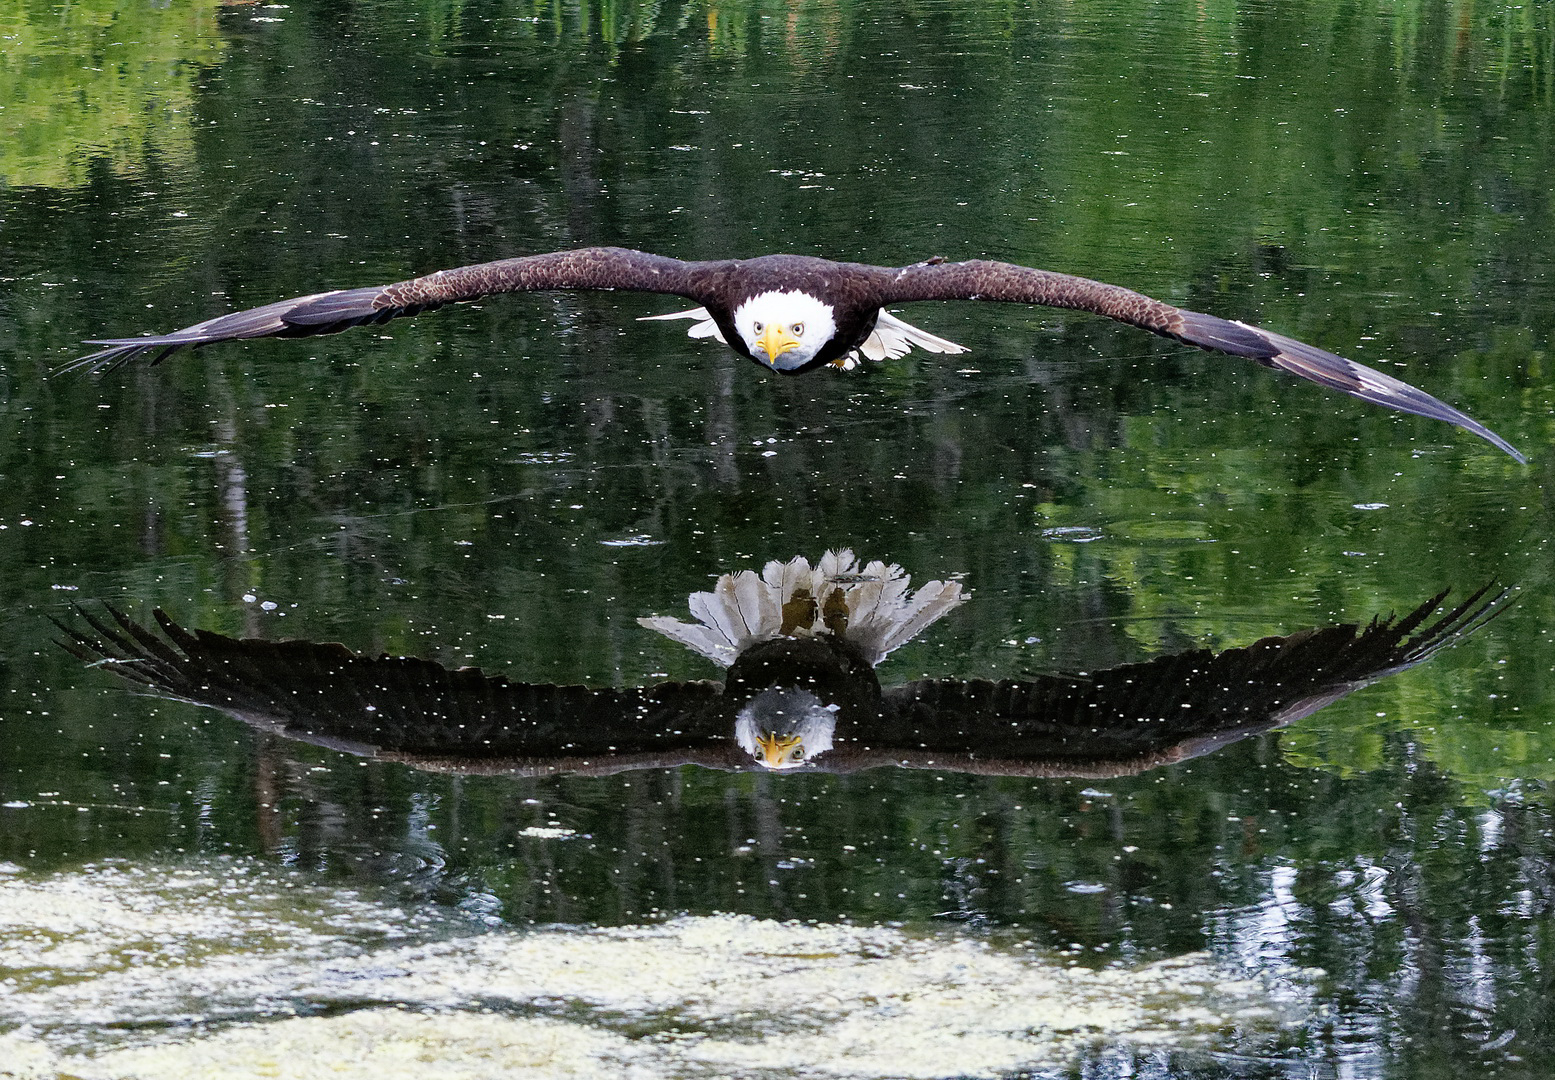 Reflection of a bald eagle in flight